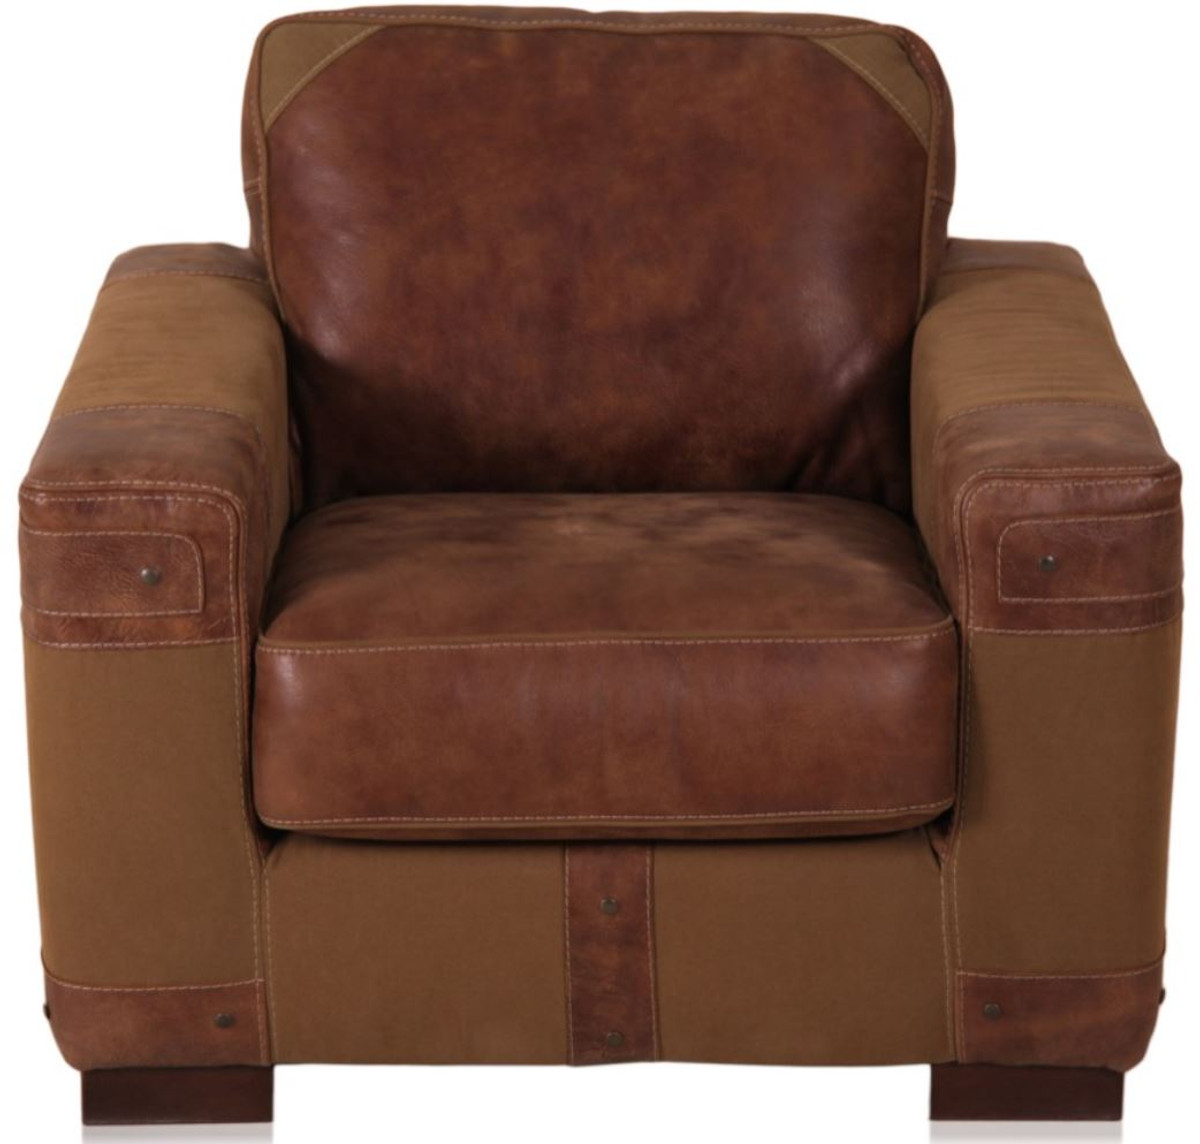 Sessel Chesterfield Casa Padrino Luxus Echtleder Sessel Braun 92 X H 93 Cm Chesterfield Möbel